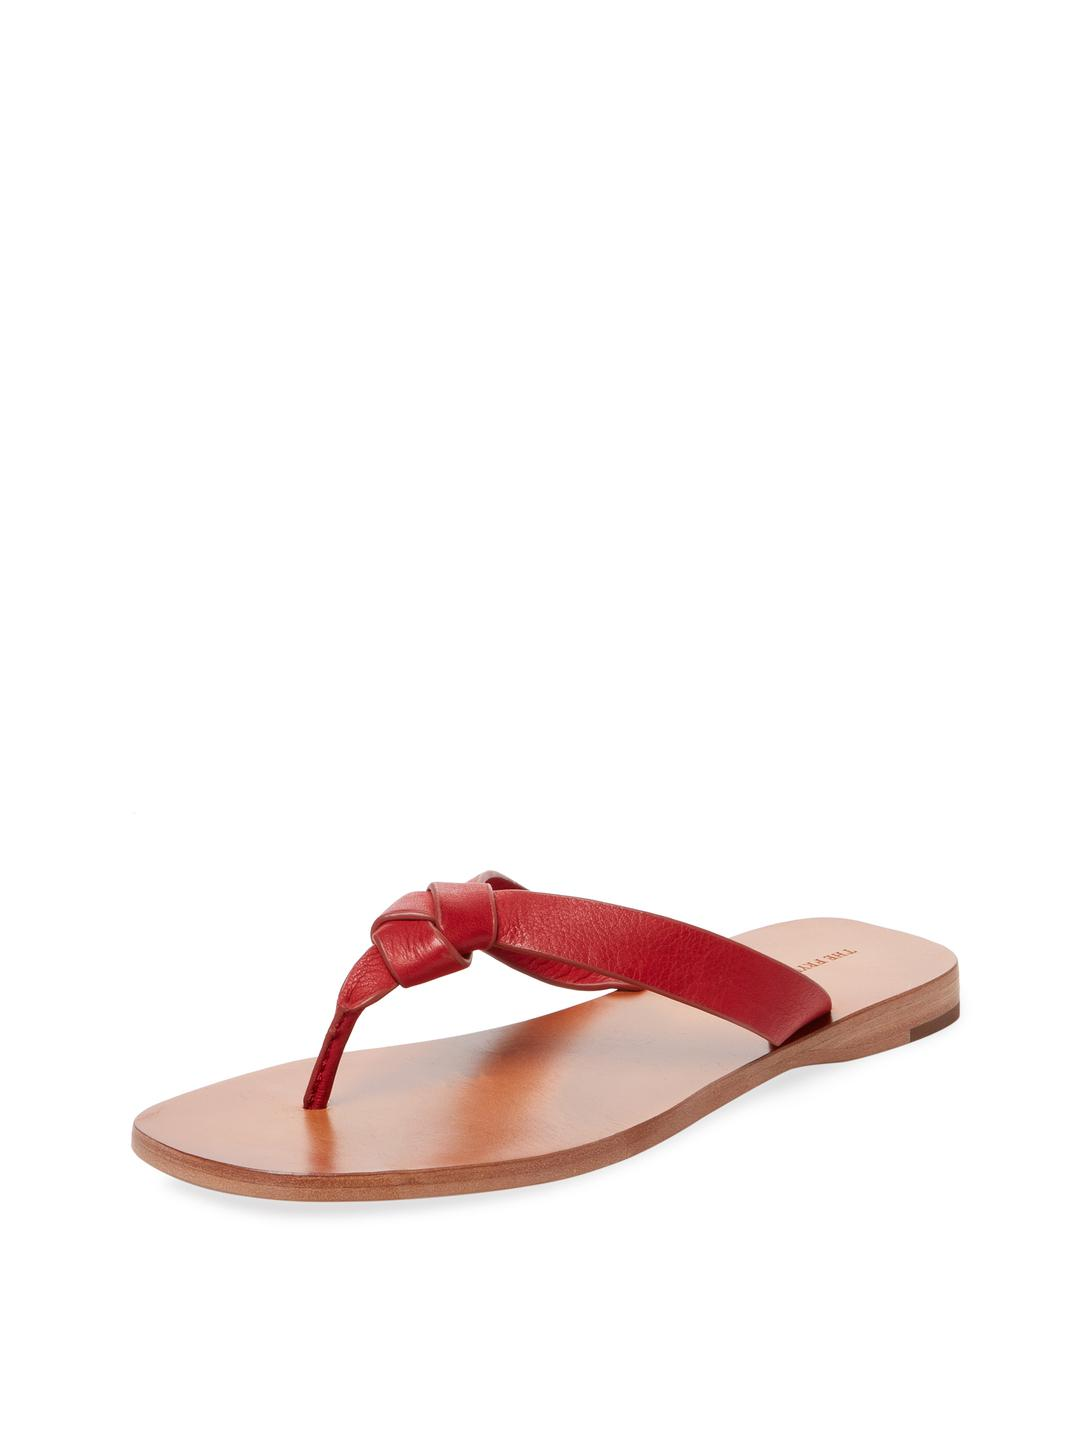 3832b8d1c5f8bc Lyst - Frye Perry Knot Leather Thong Sandal in Red